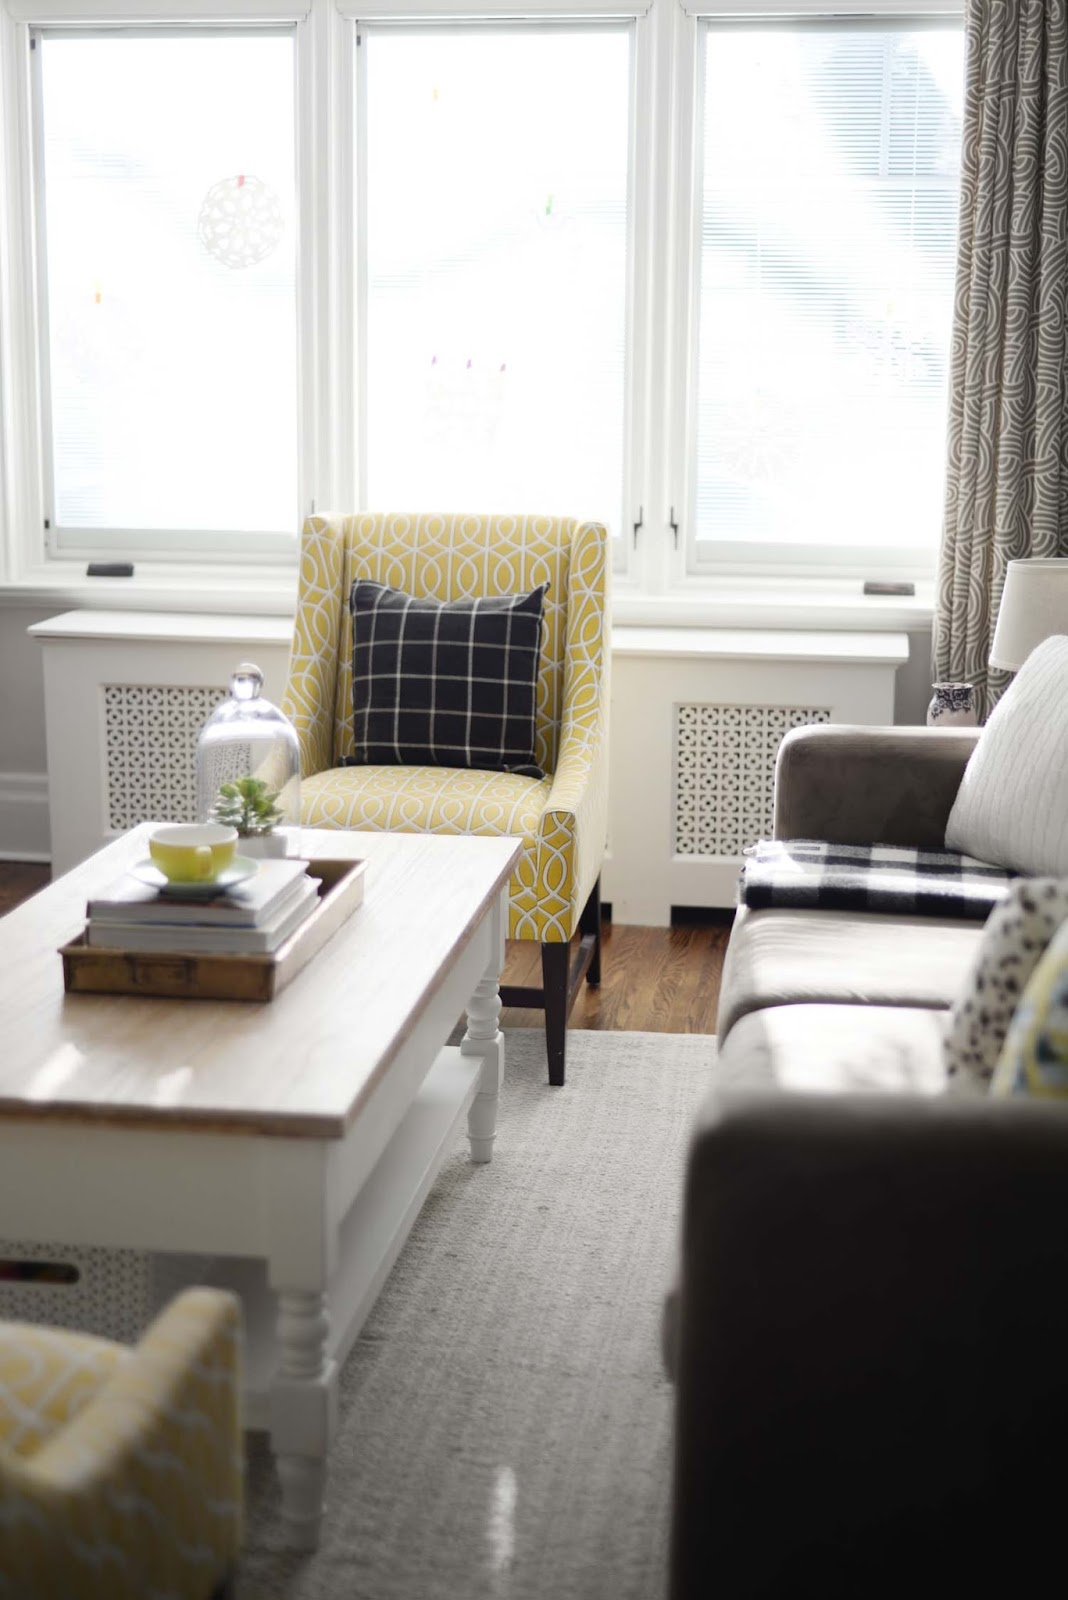 Wayfair Winter Refresh | Living room windows | Dwell Studio Gate chair | RamblingRenovators.ca